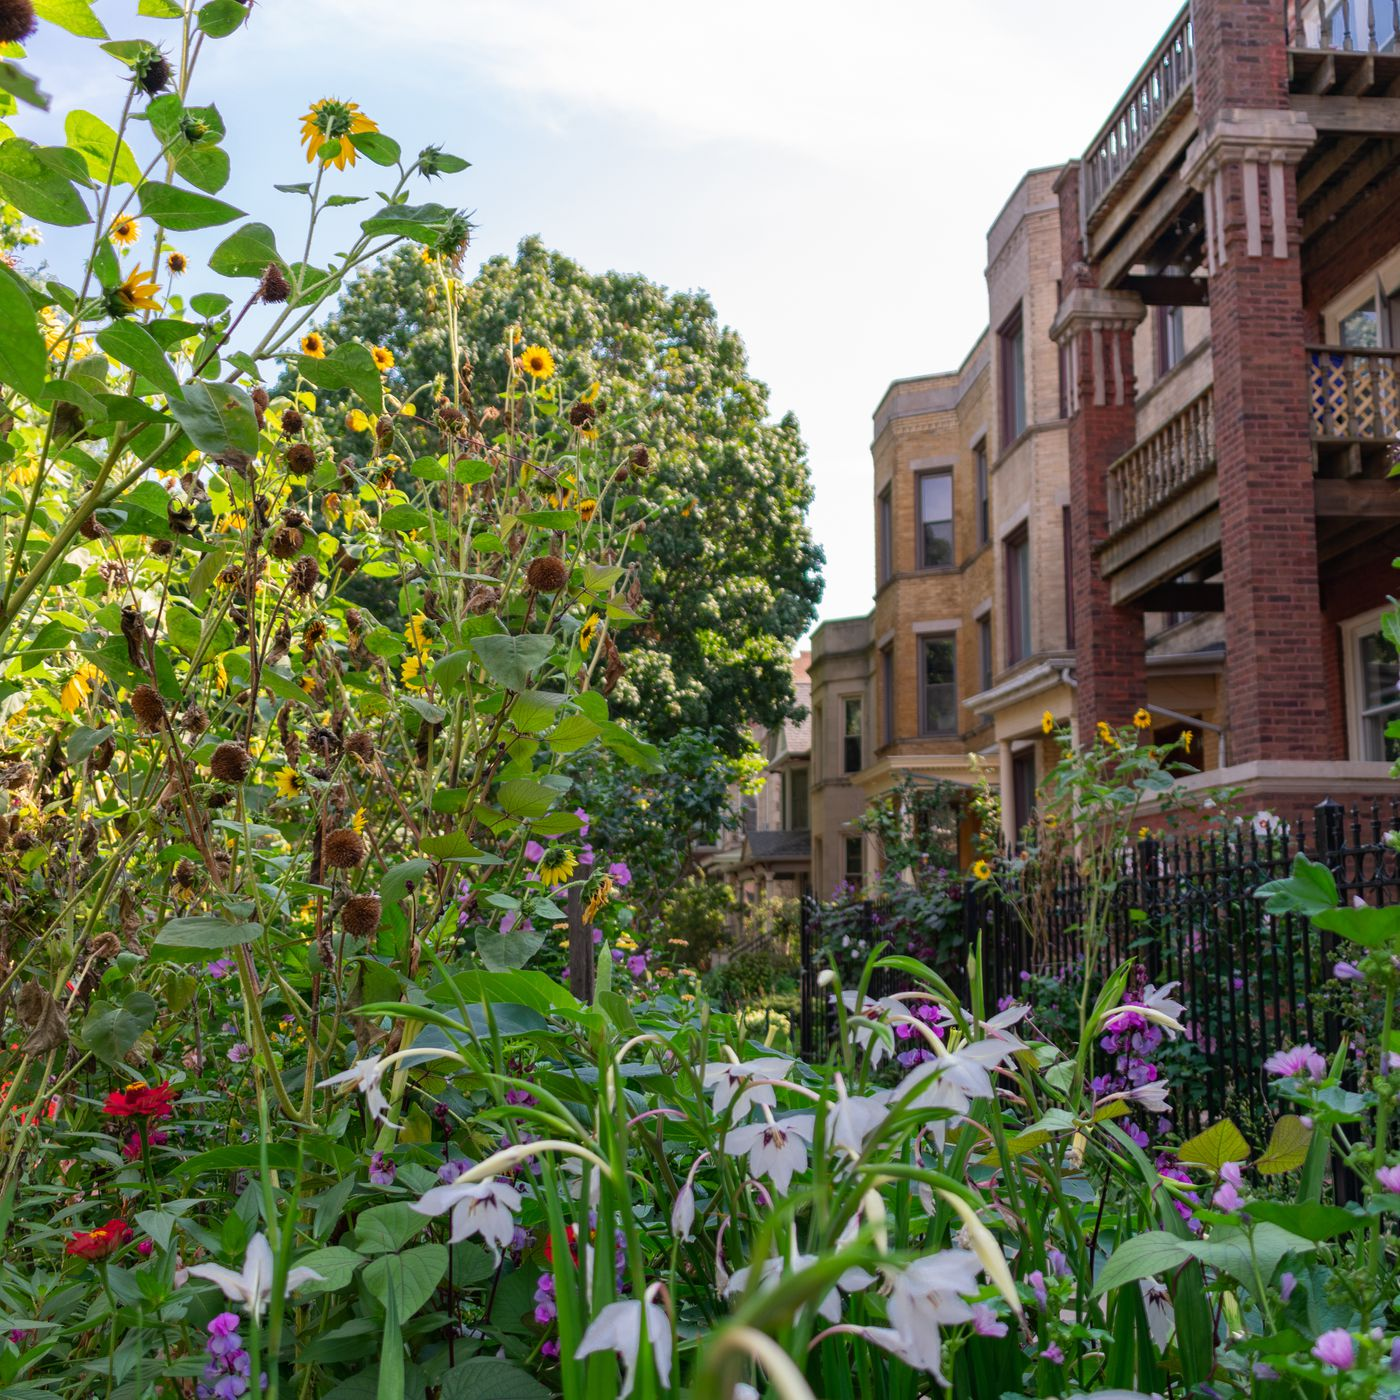 Chicago Landscaping Ideas For Front Yards Gardens Spring Plants Curbed Chicago